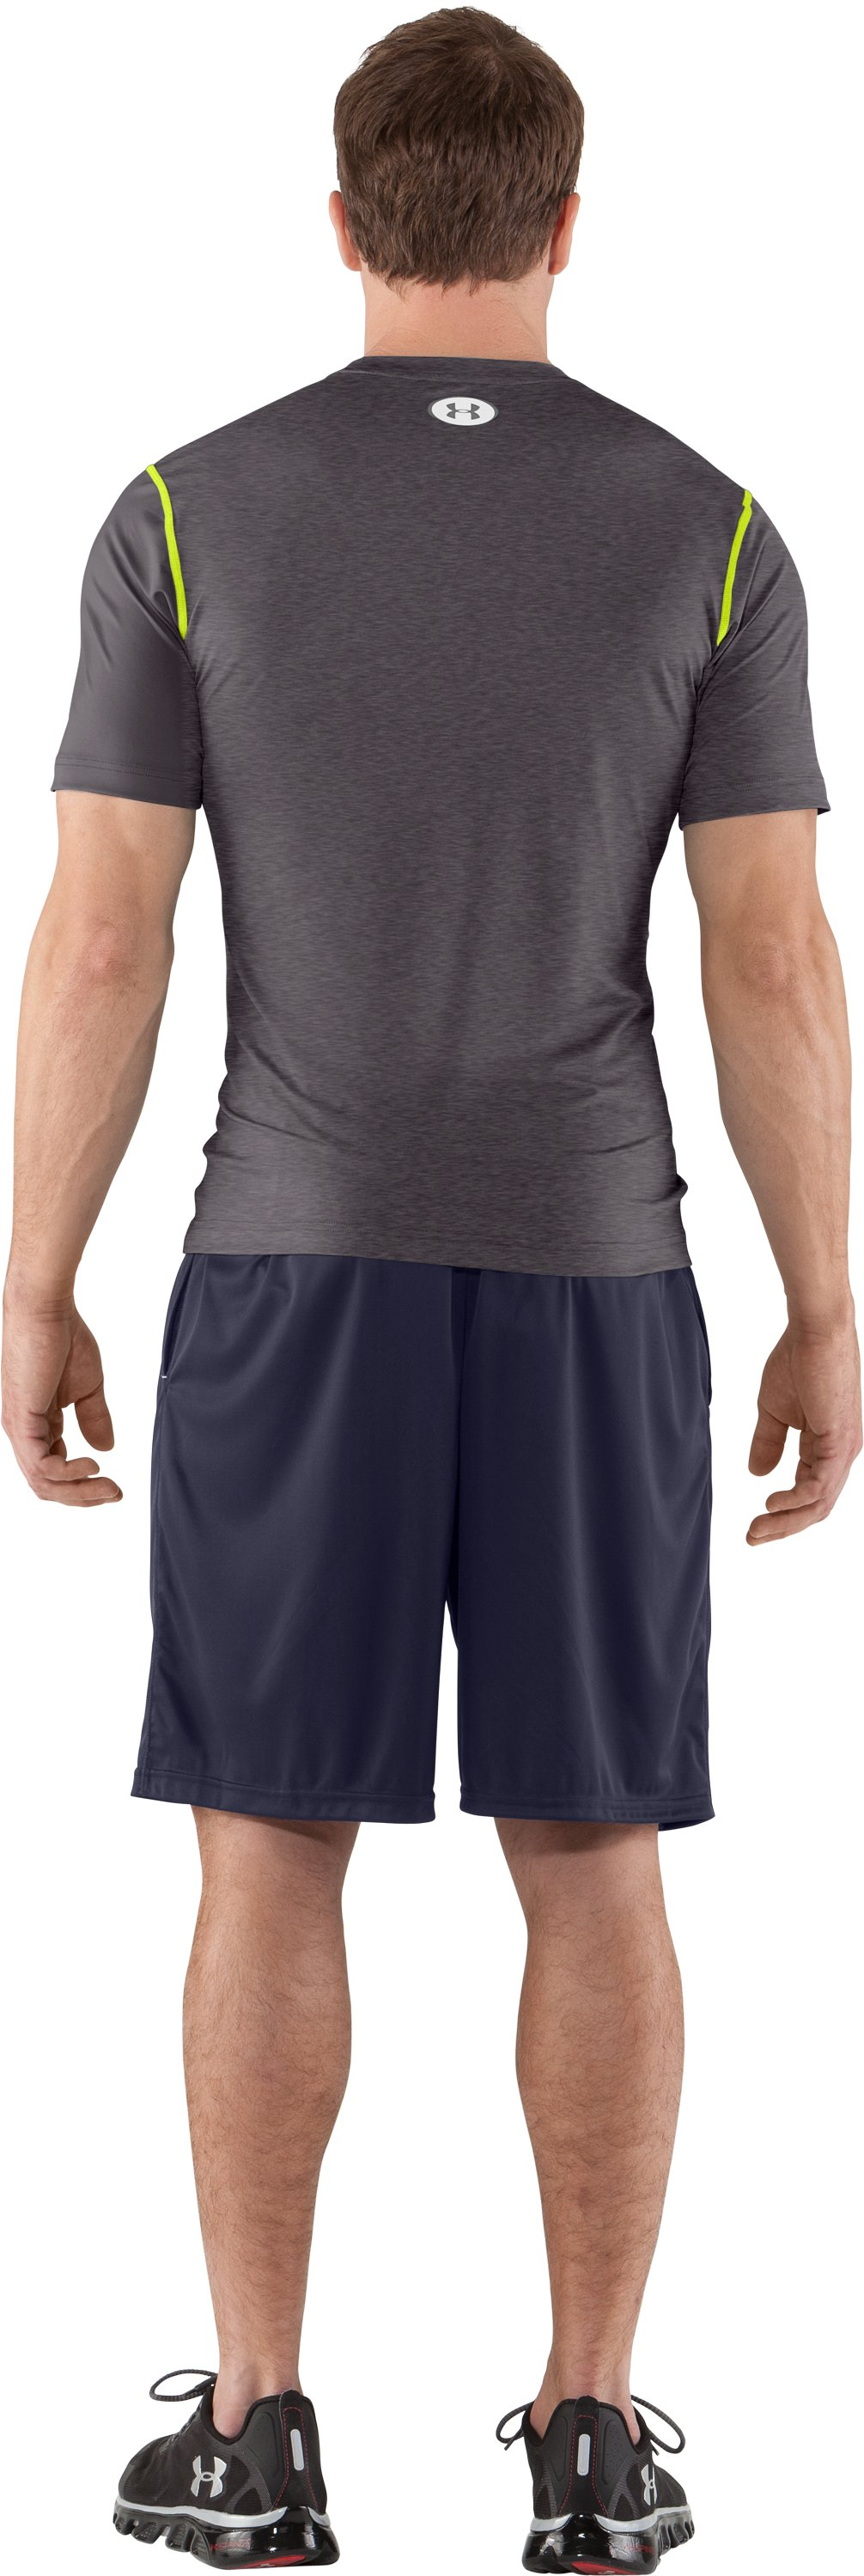 Men's HeatGear® Sonic Fitted Short Sleeve, Carbon Heather, Back